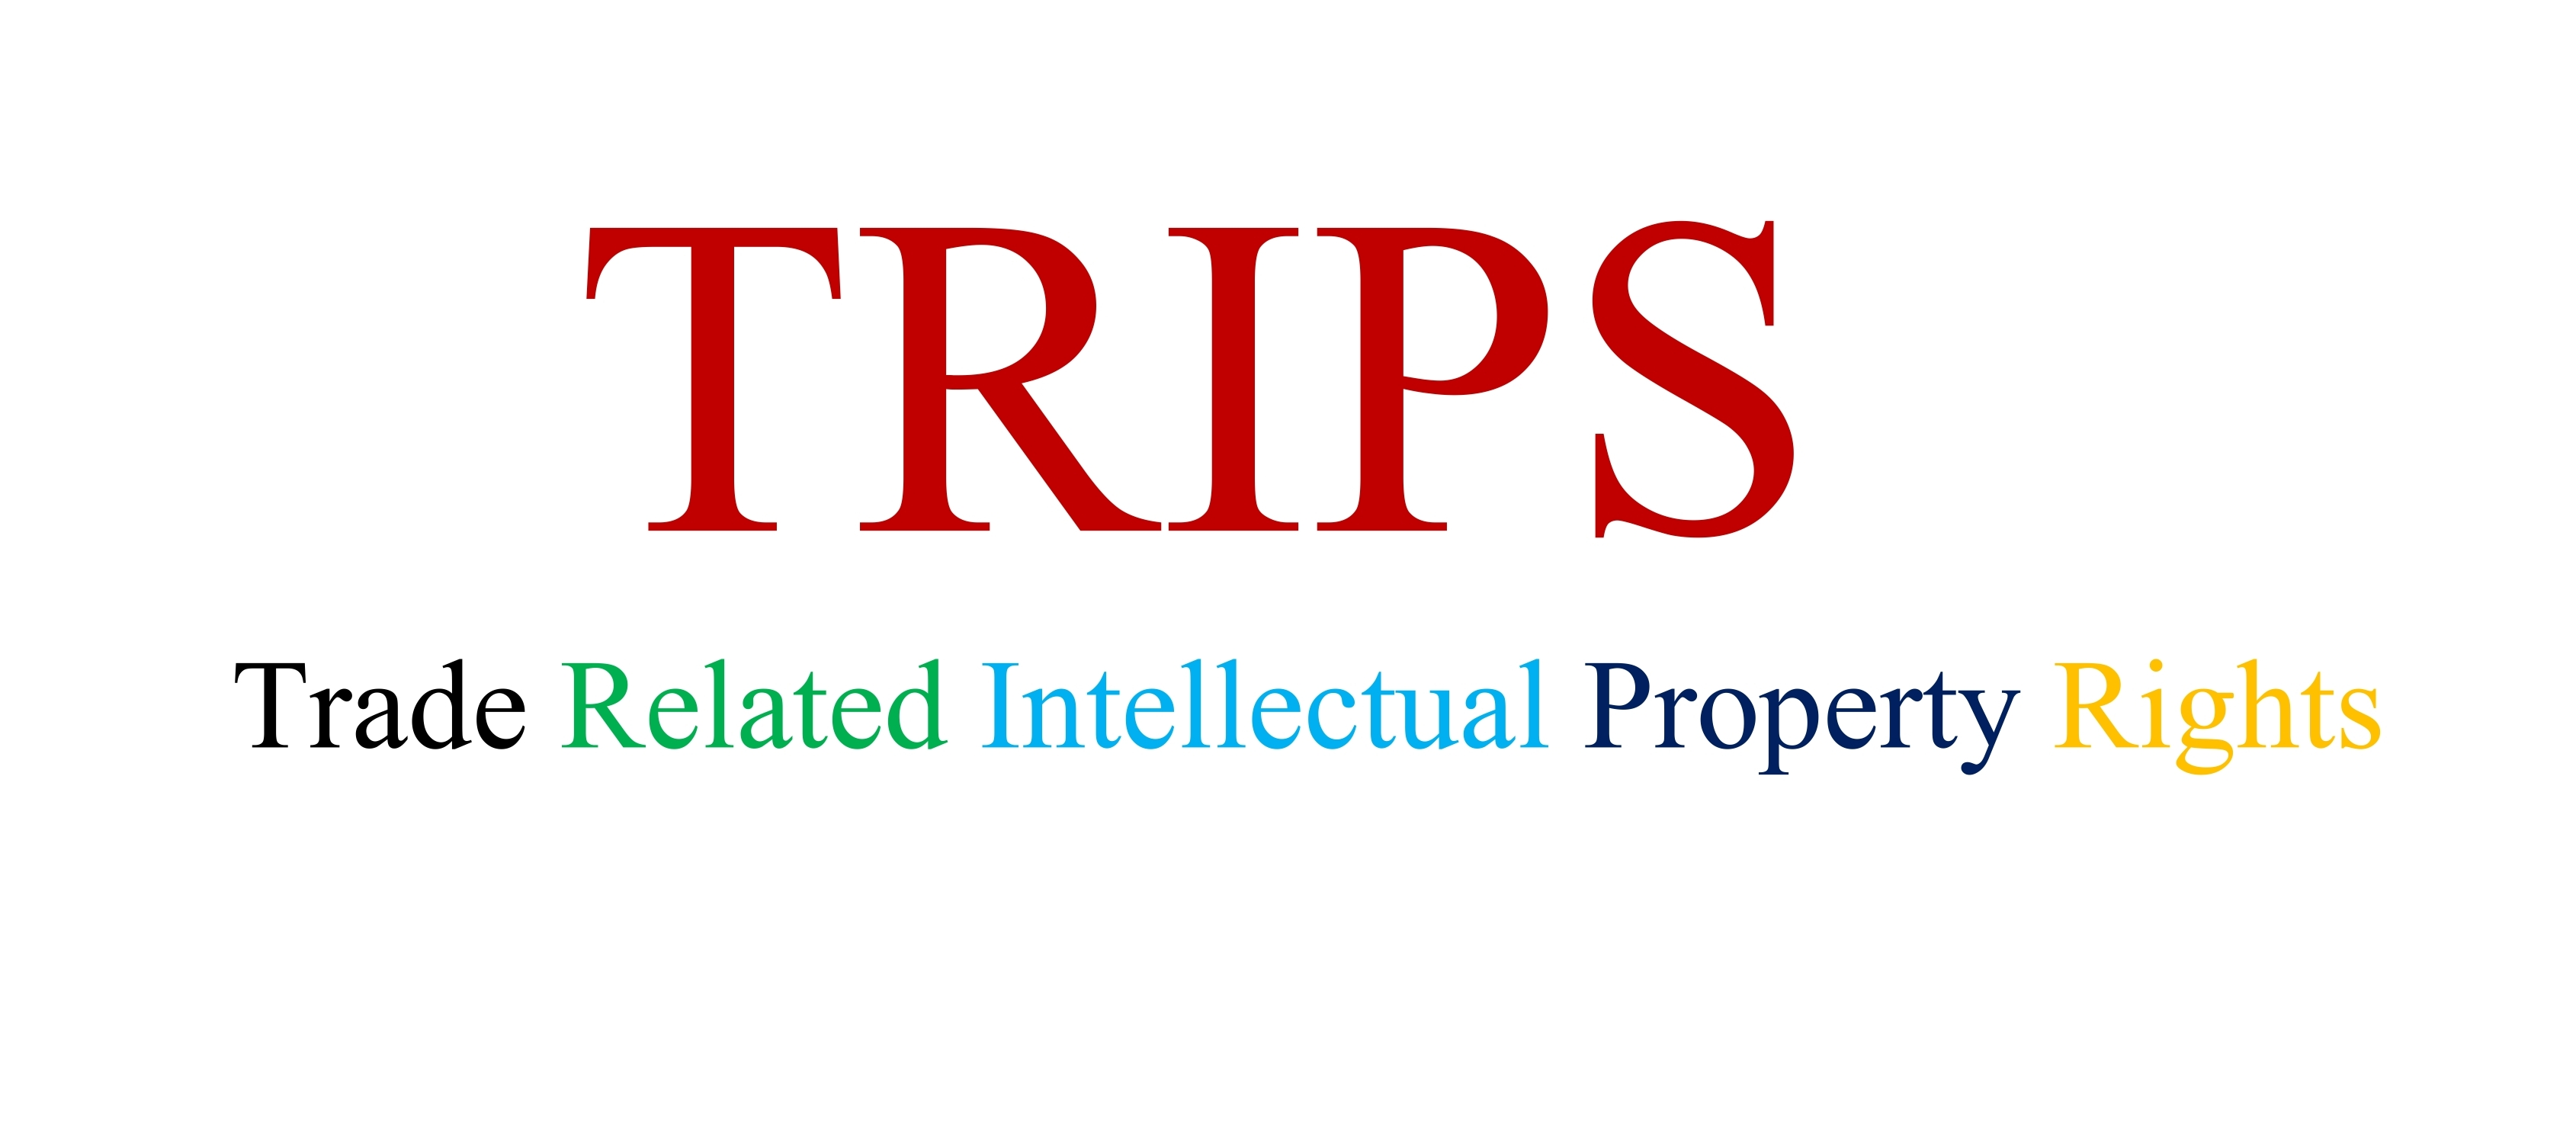 Trips Agreement Intellectual Property